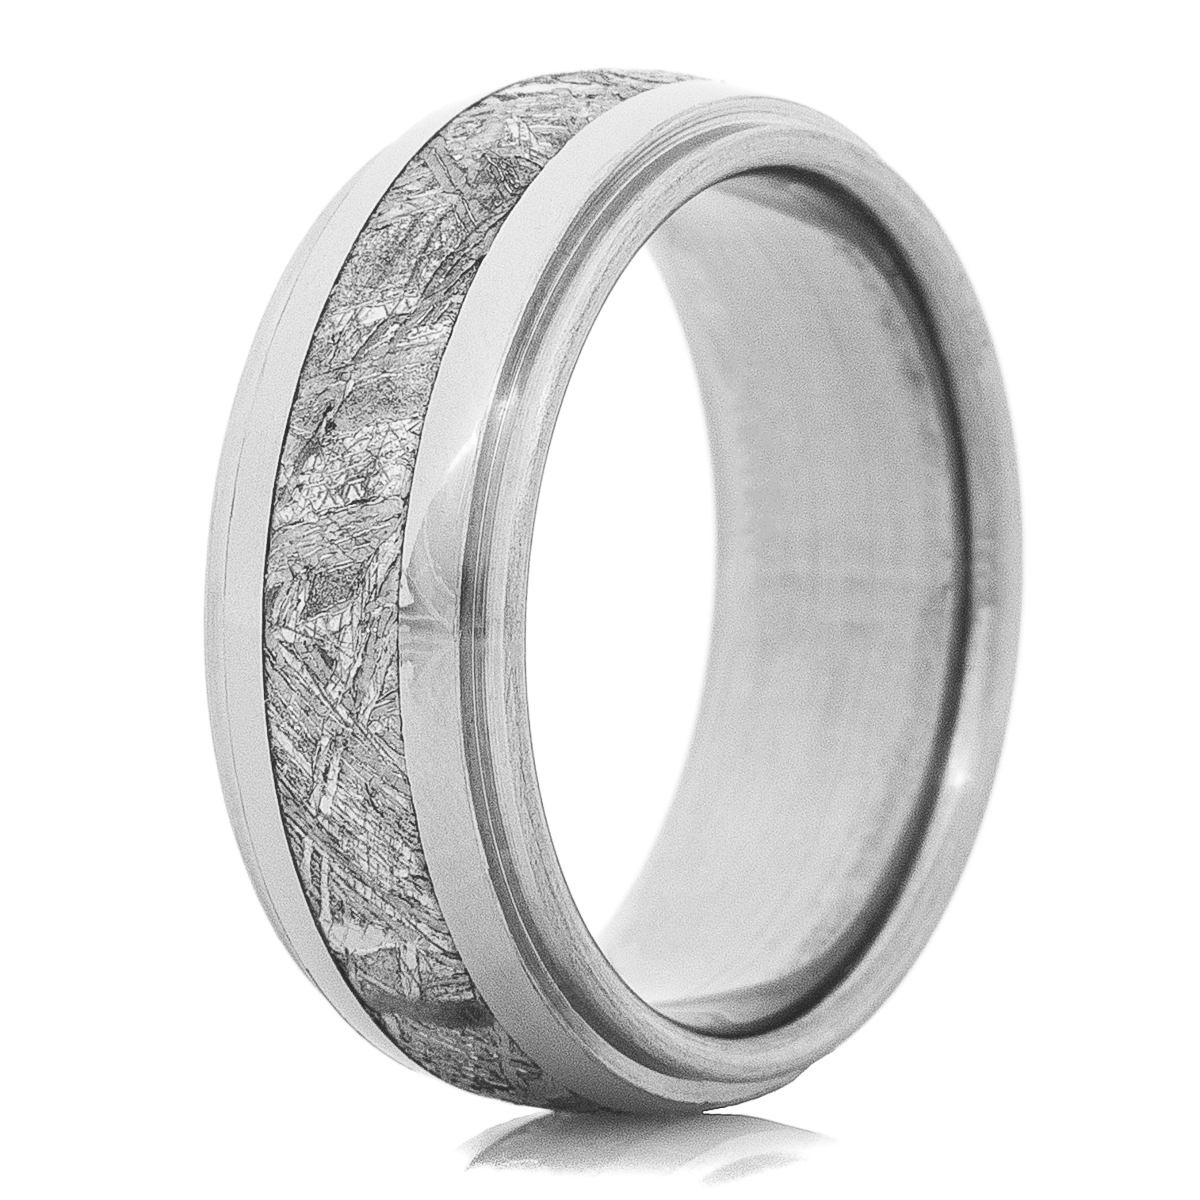 Men's Dome Profile Grooved Edge Titanium Gibeon Meteorite Ring